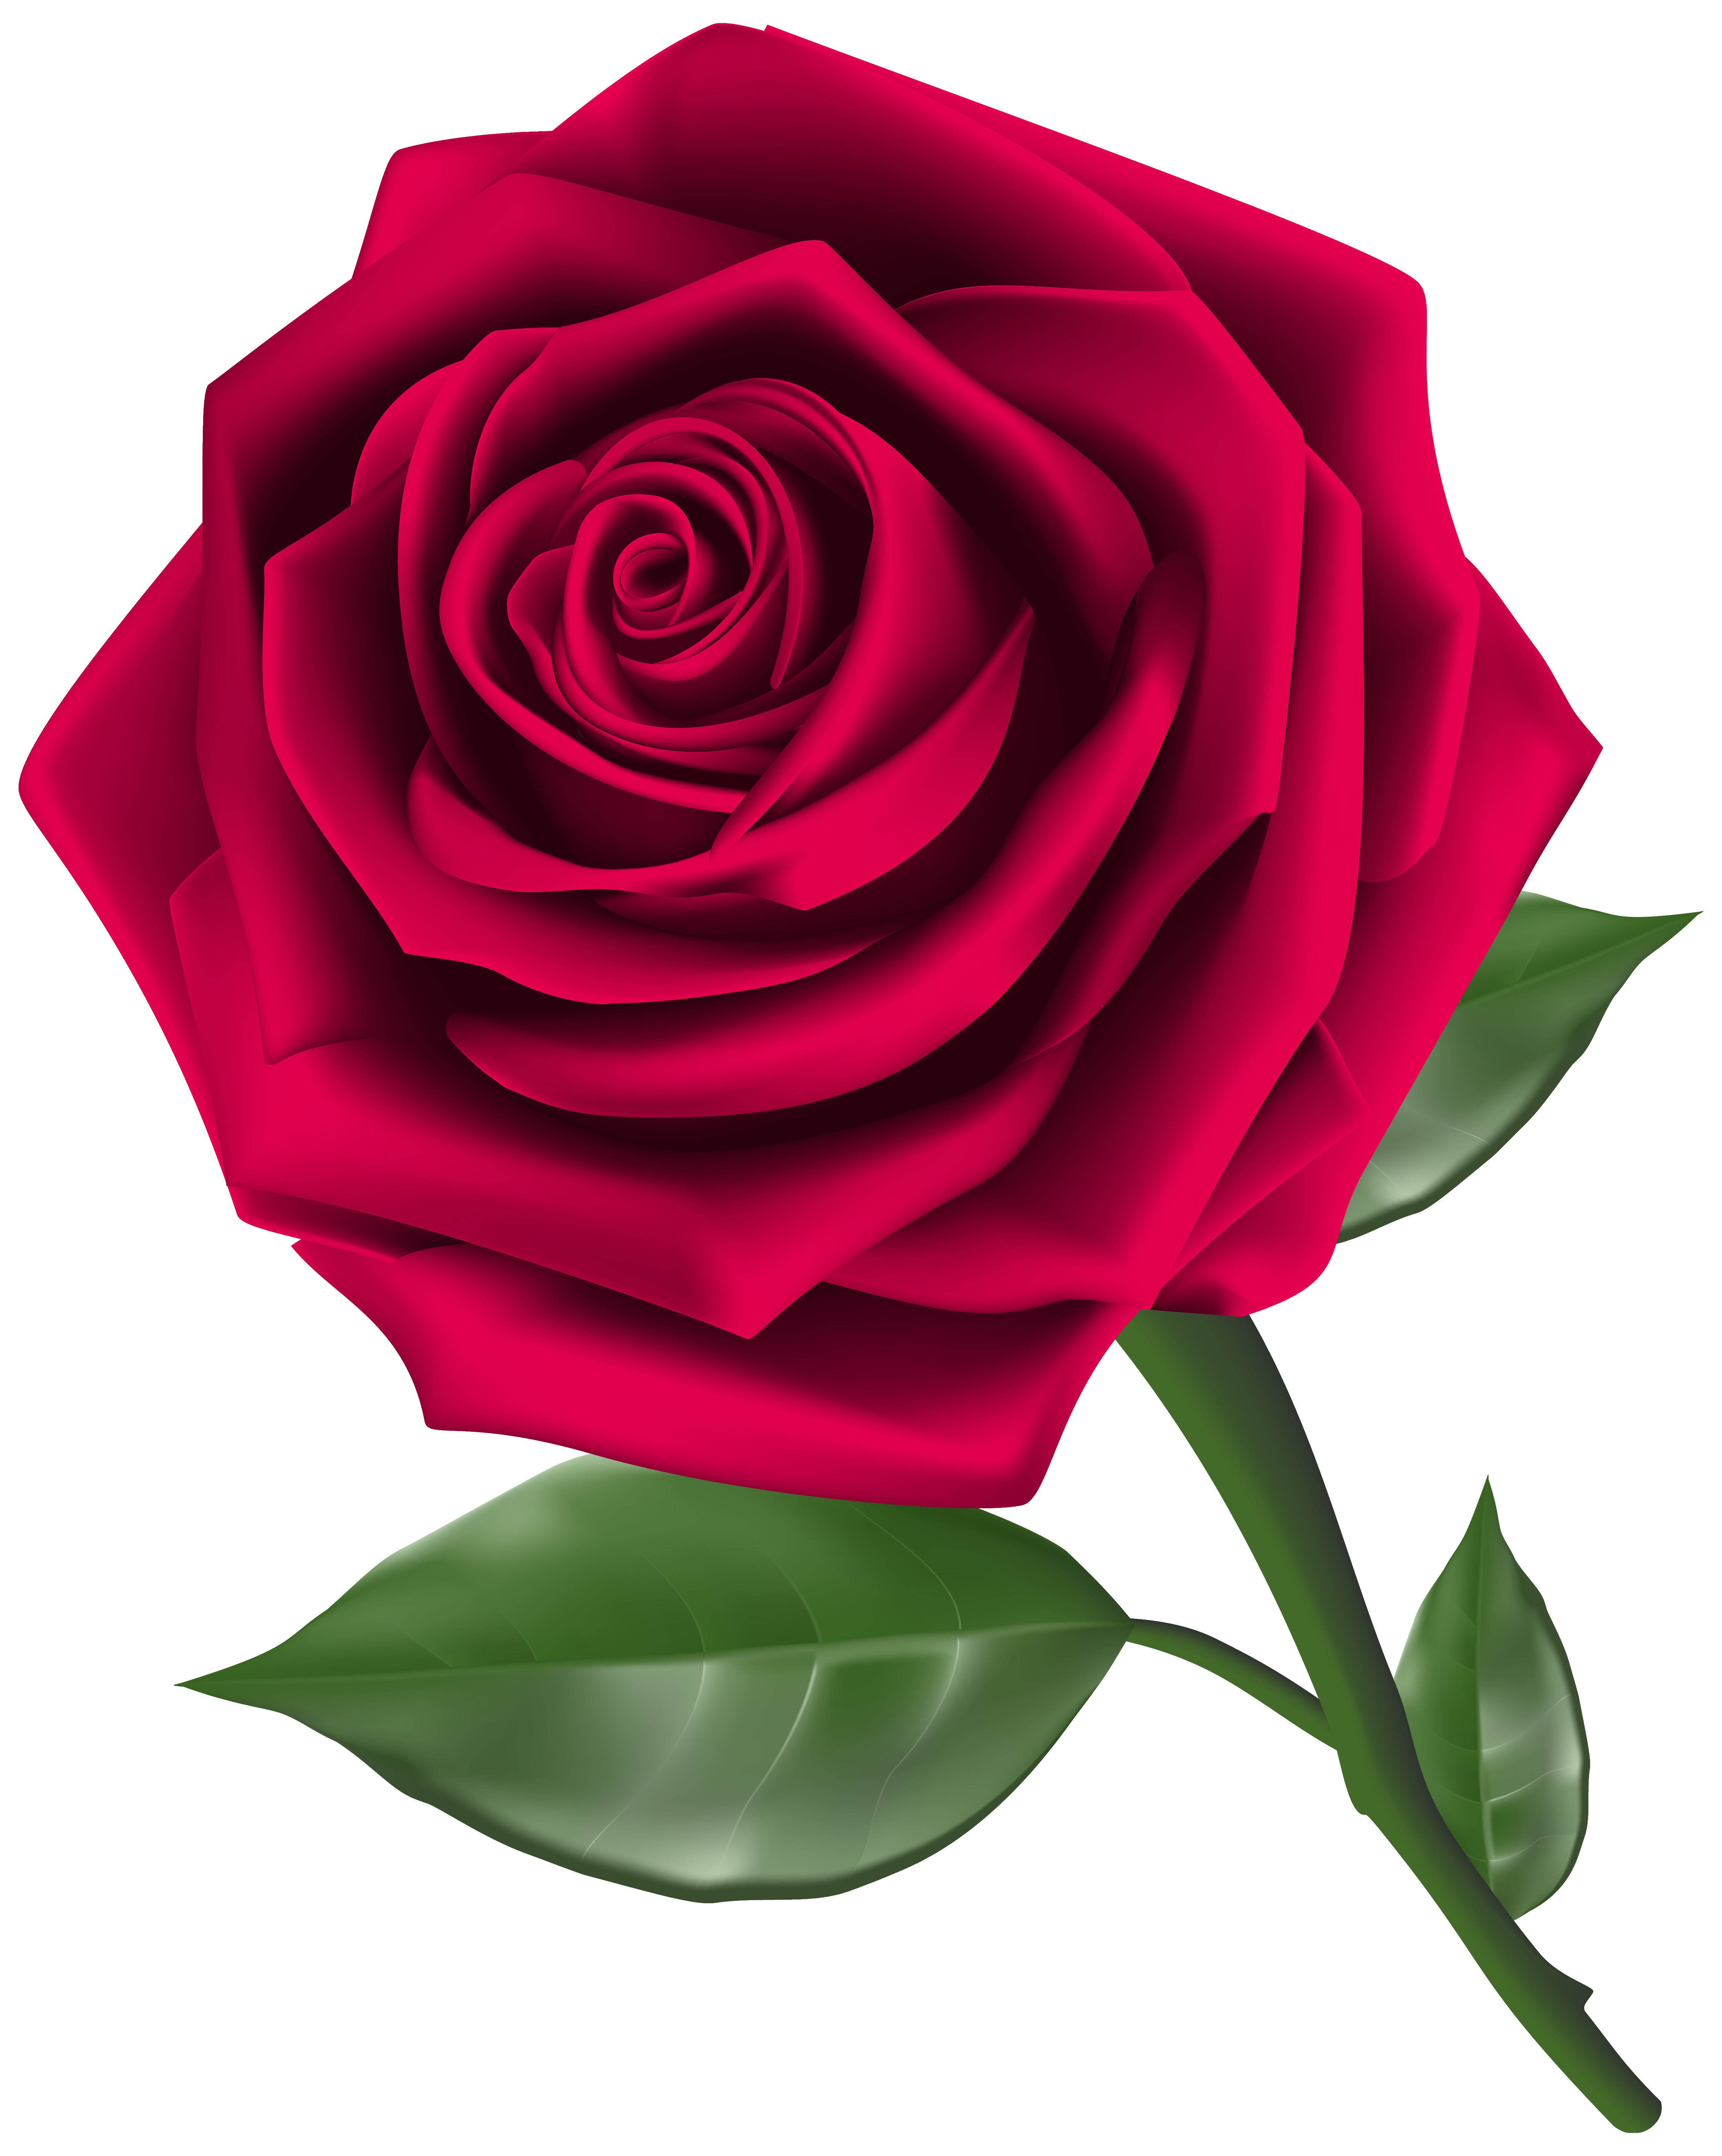 Free 3D Roses Cliparts, Download Free Clip Art, Free Clip.